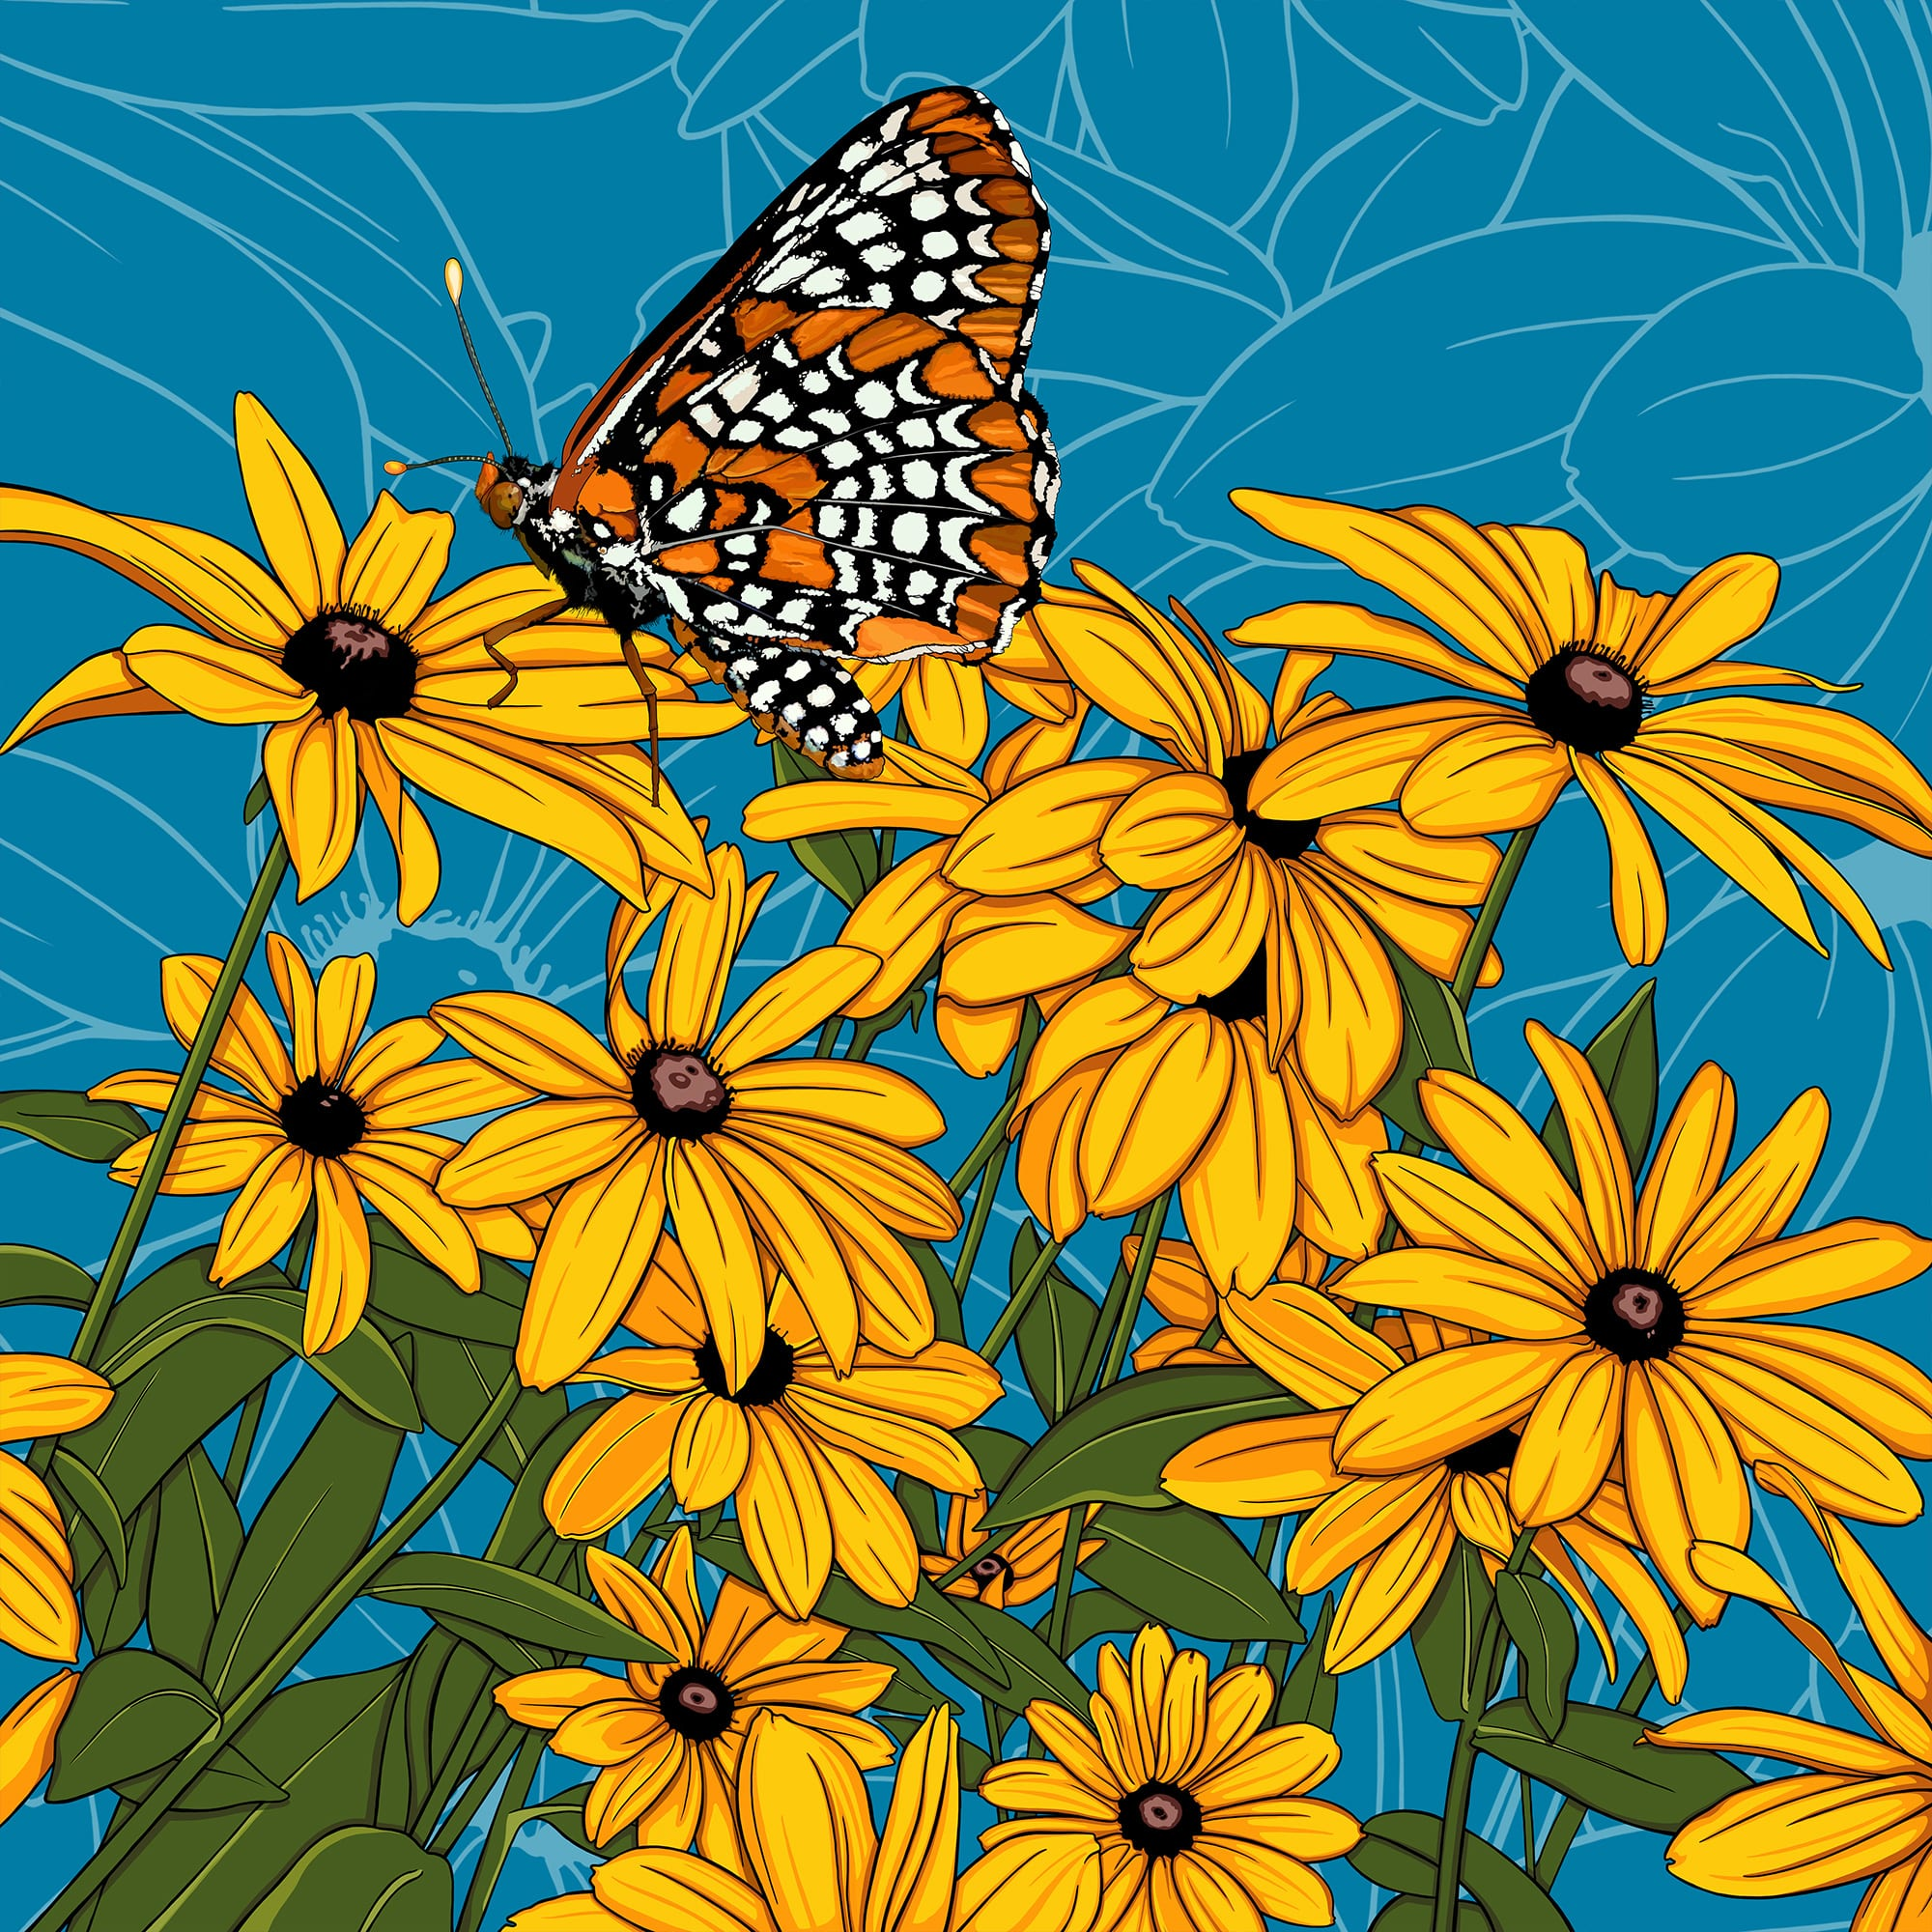 Maryland: Black-eyed Susan + Baltimore Checkerspot Butterfly